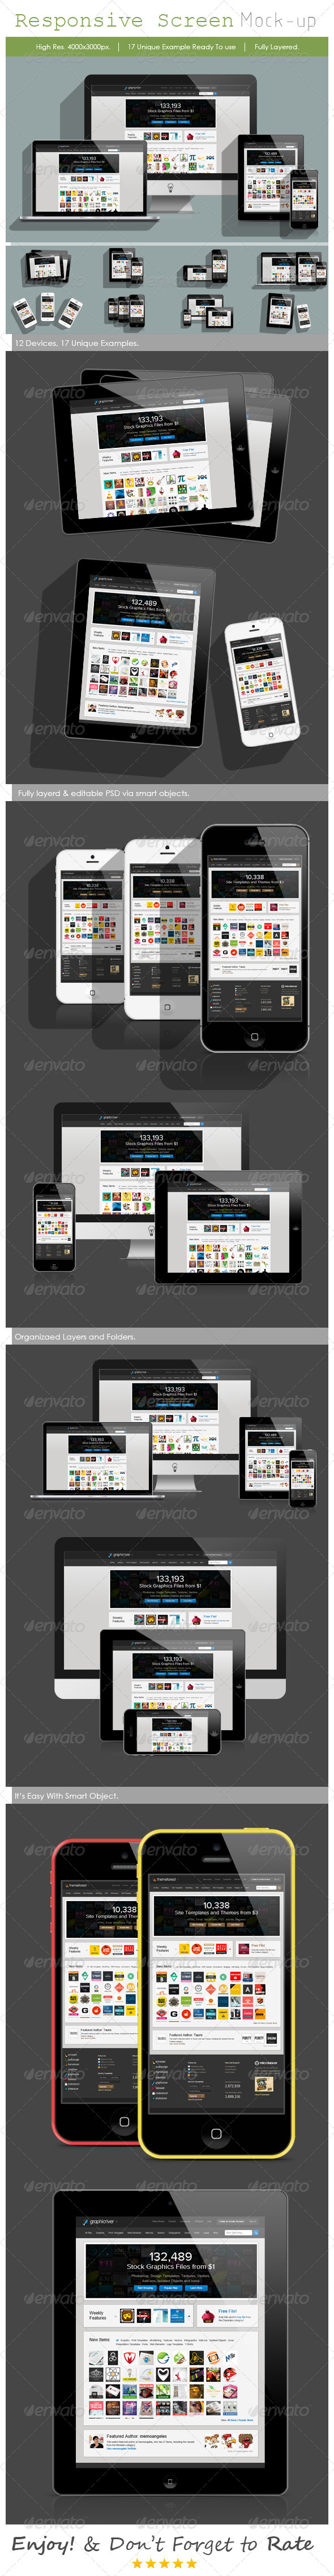 Responsive Screen Mock-up (Long Shadow) - Displays Product Mock-Ups